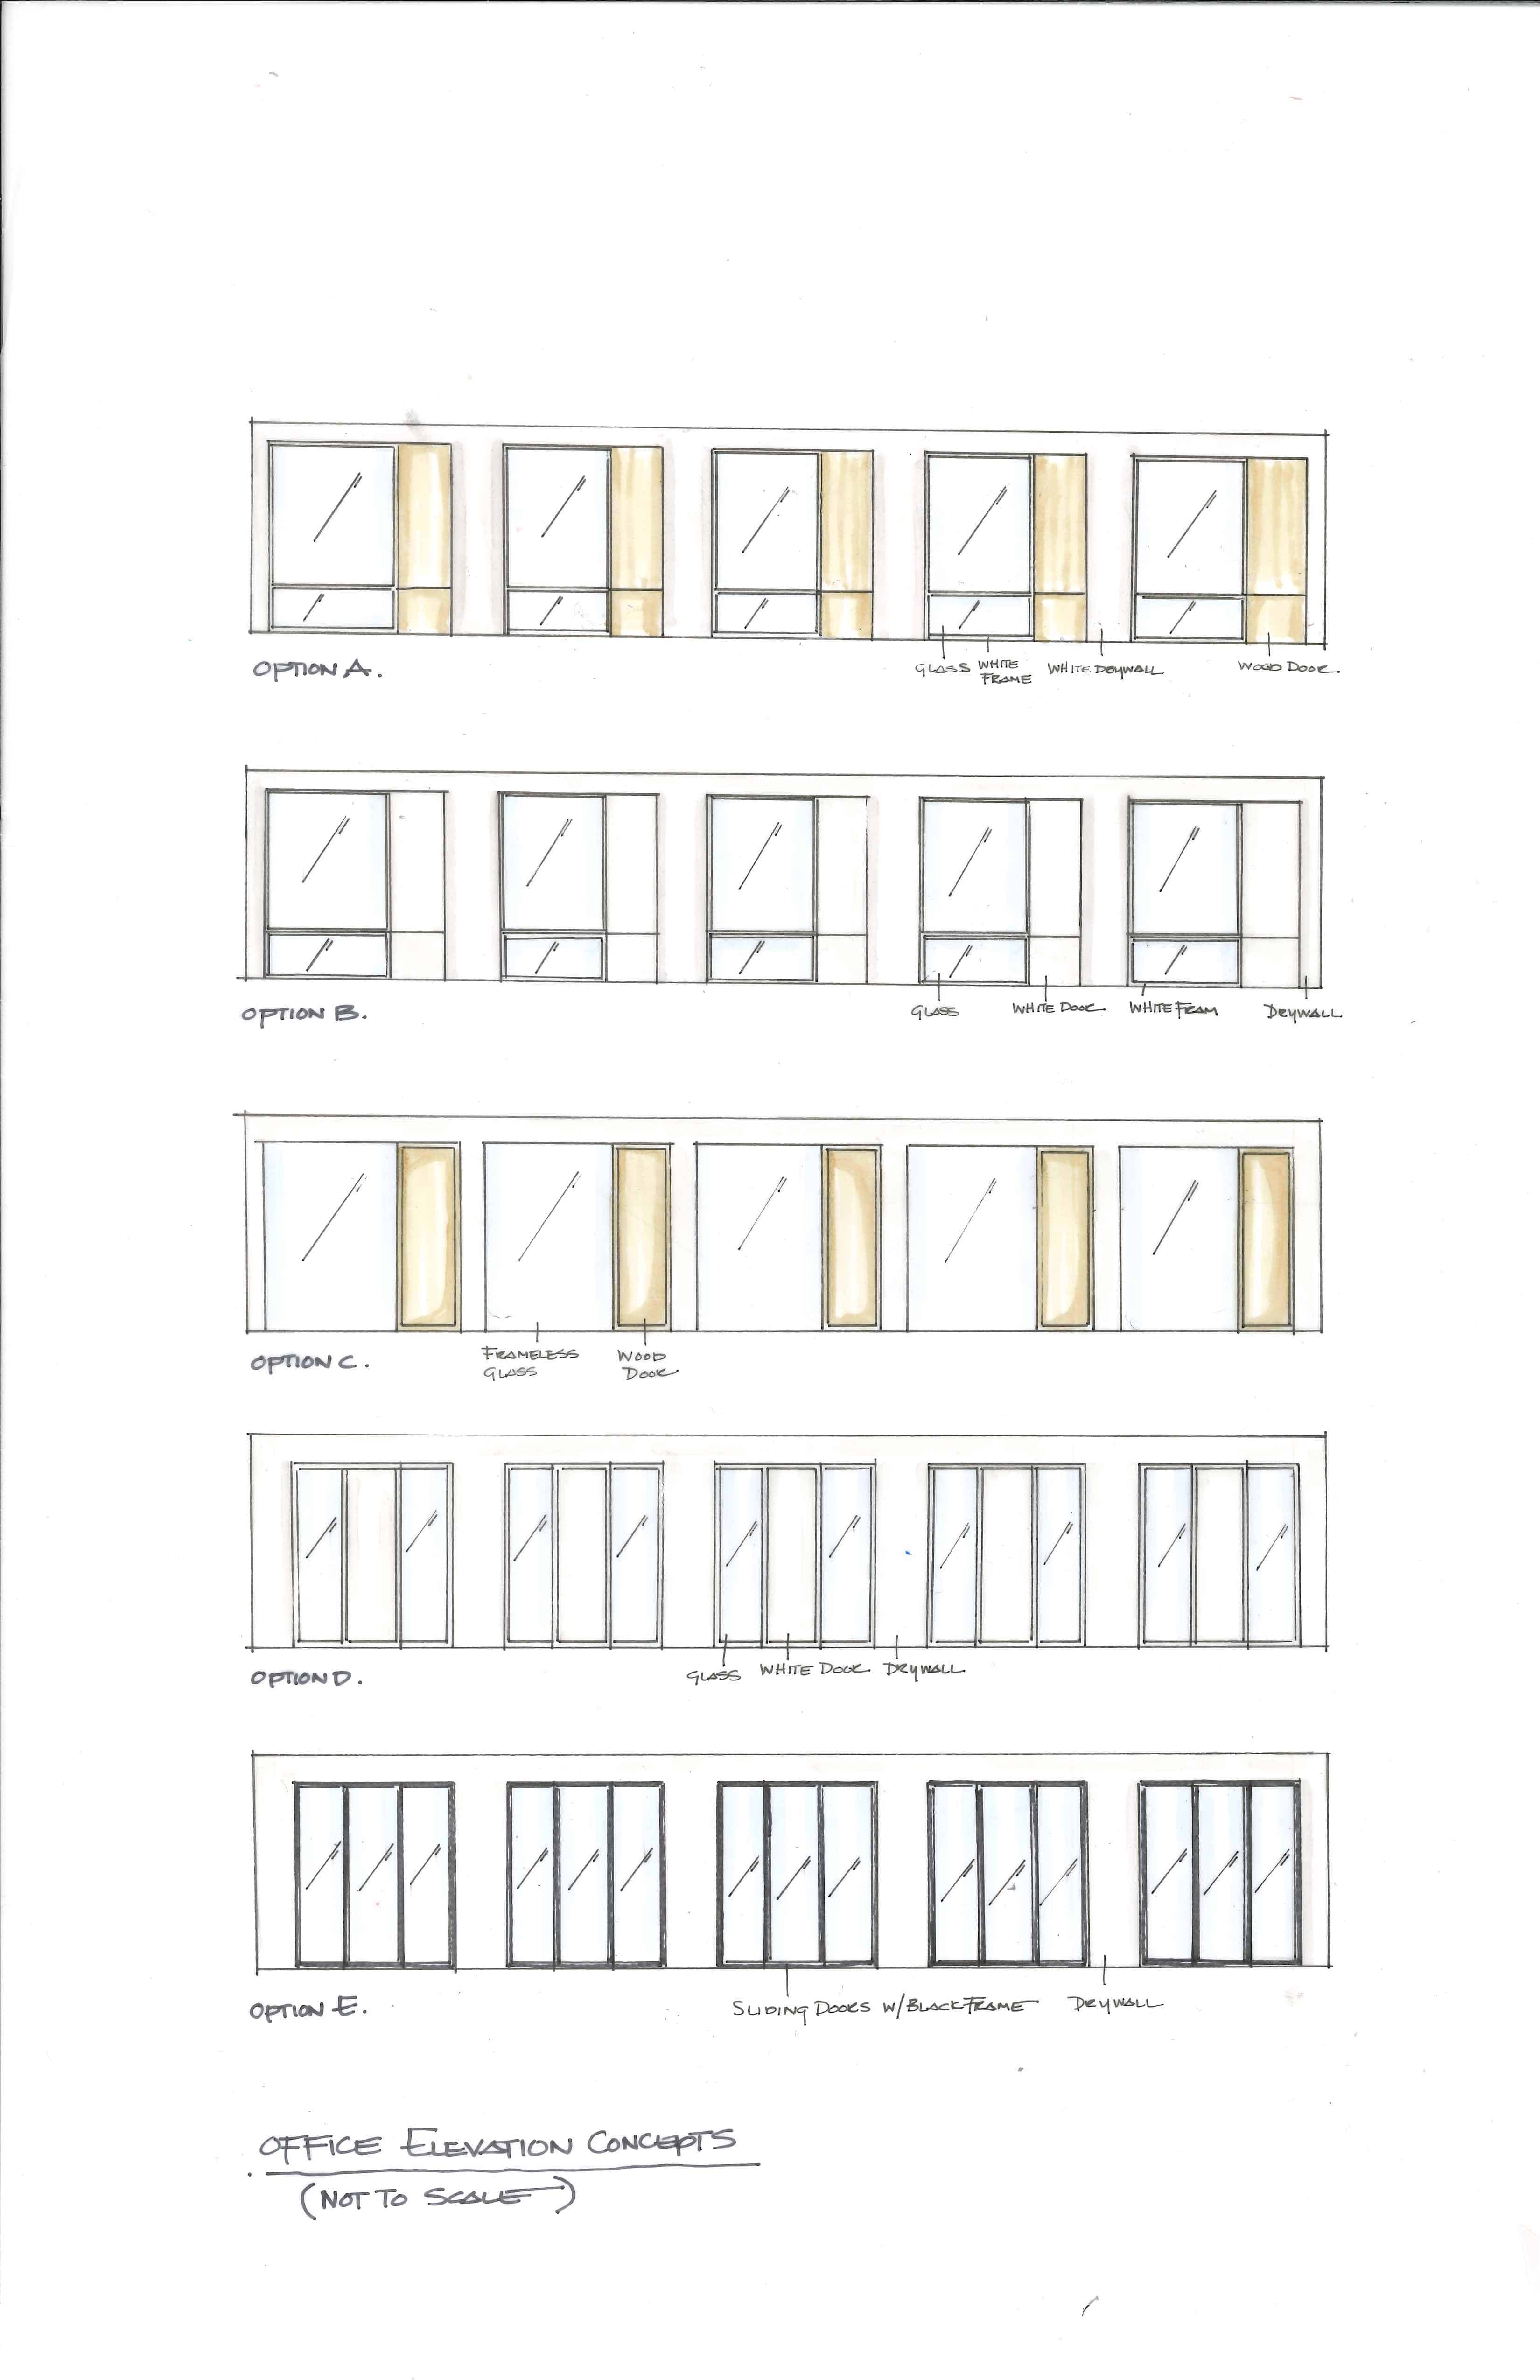 1348_Broad Foundation_Sketches from Interior Designer_Page_1